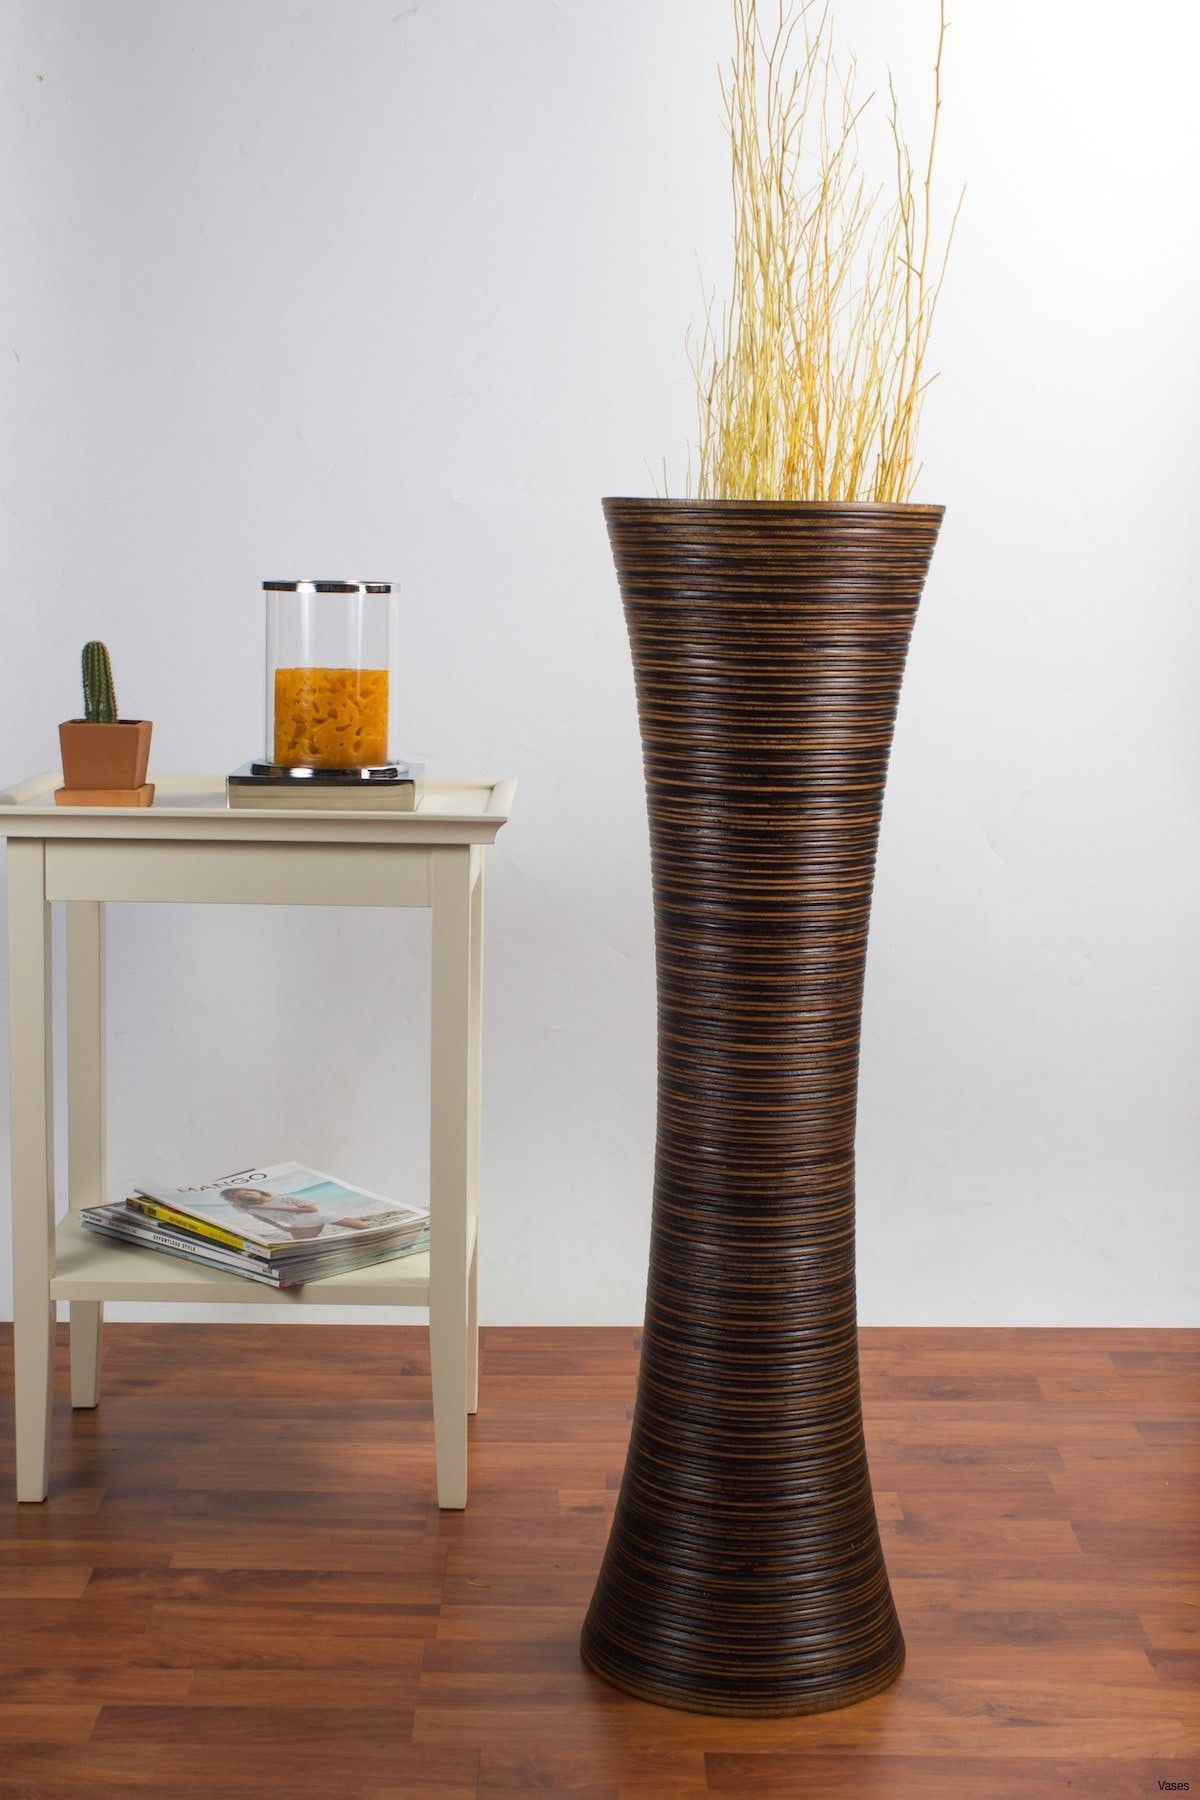 huge glass floor vase of tall decorative vases luxury decorative floor vases fresh d dkbrw with regard to tall decorative vases luxury decorative floor vases fresh d dkbrw 5749 1h vases tall brown i